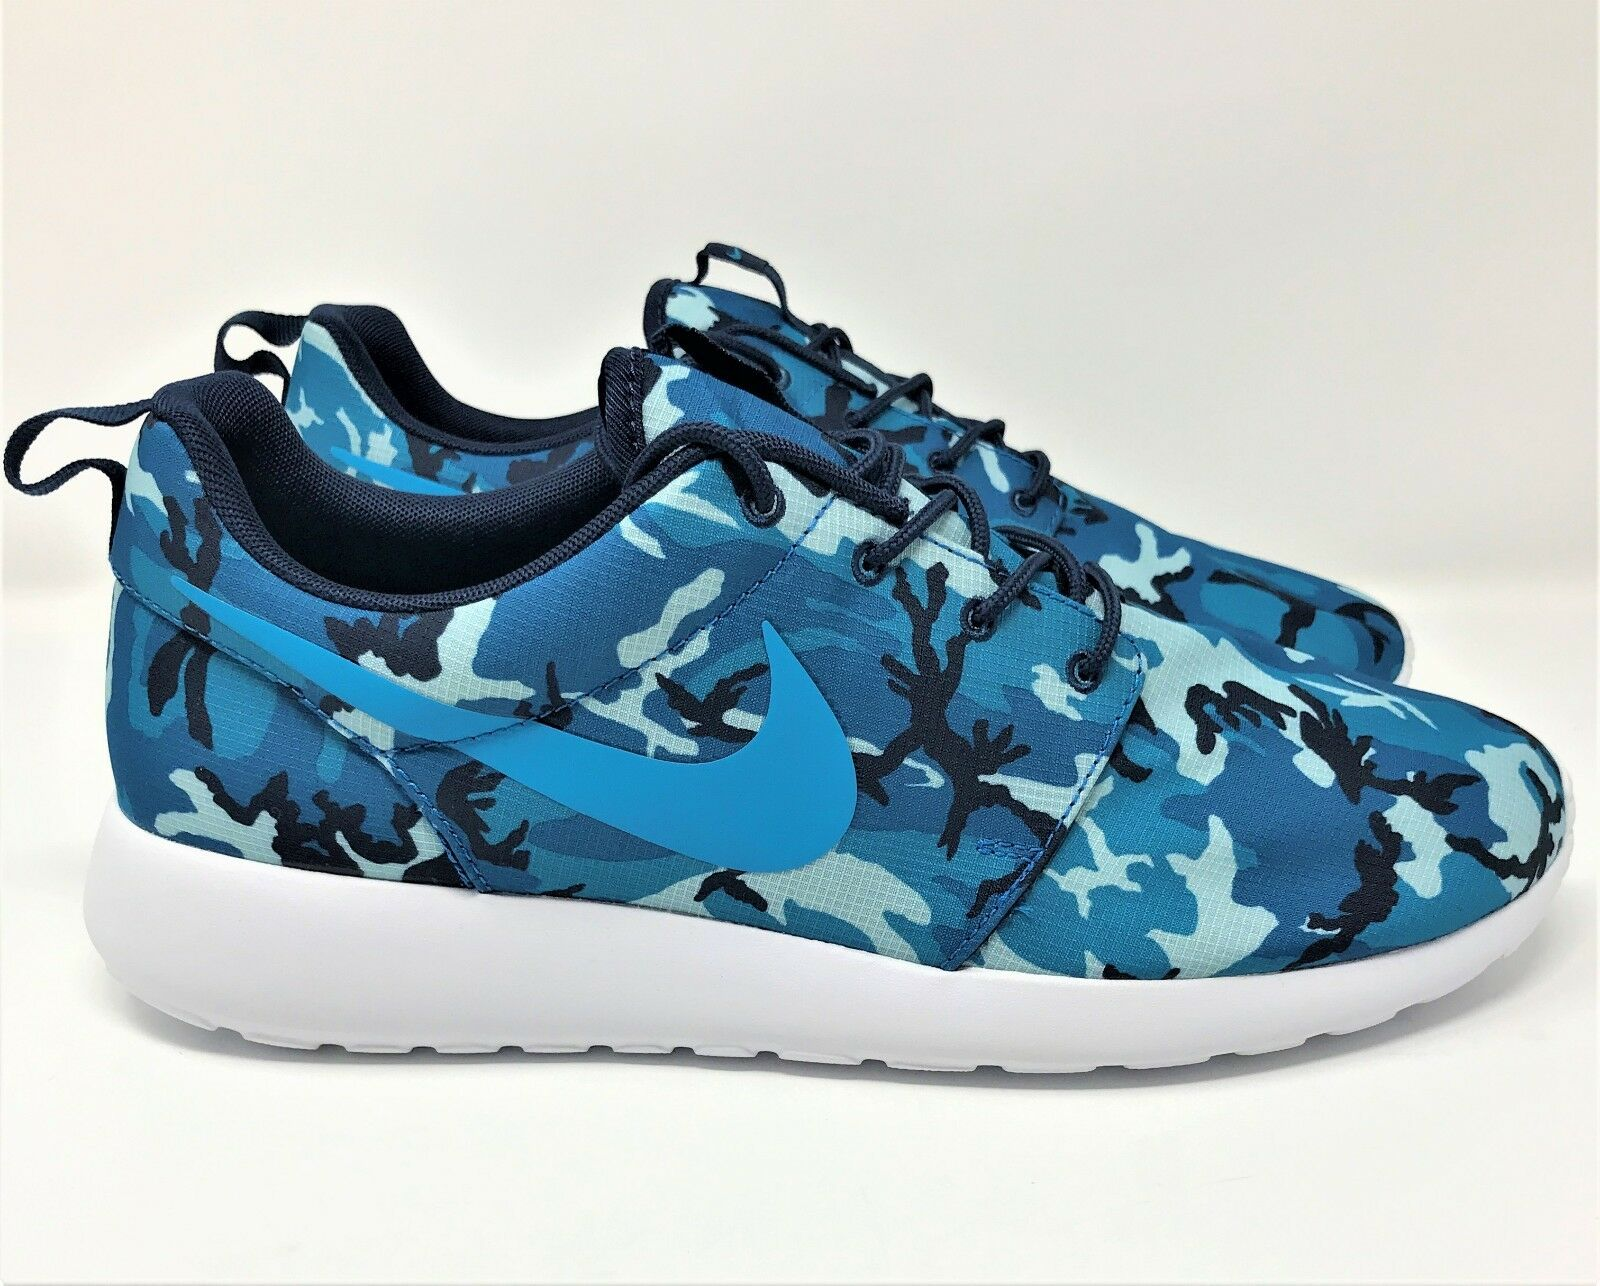 NEW Mens Nike Roshe Run One Print bluee White Camo 655206 441 Running shoes 10-12